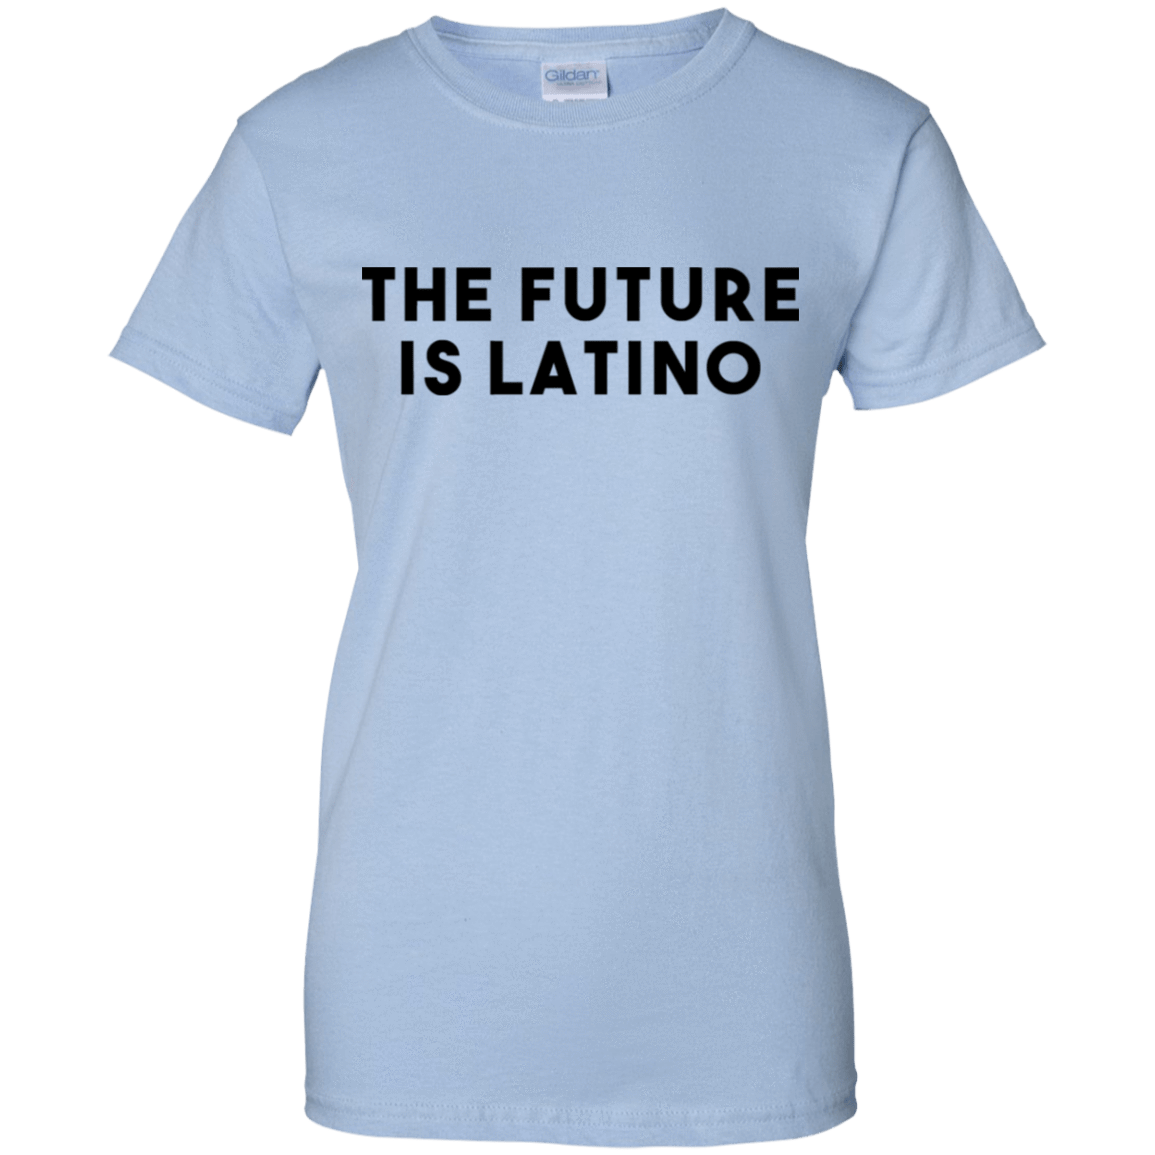 The Future Is Latino 939-9257-73057007-44716 - Tee Ript